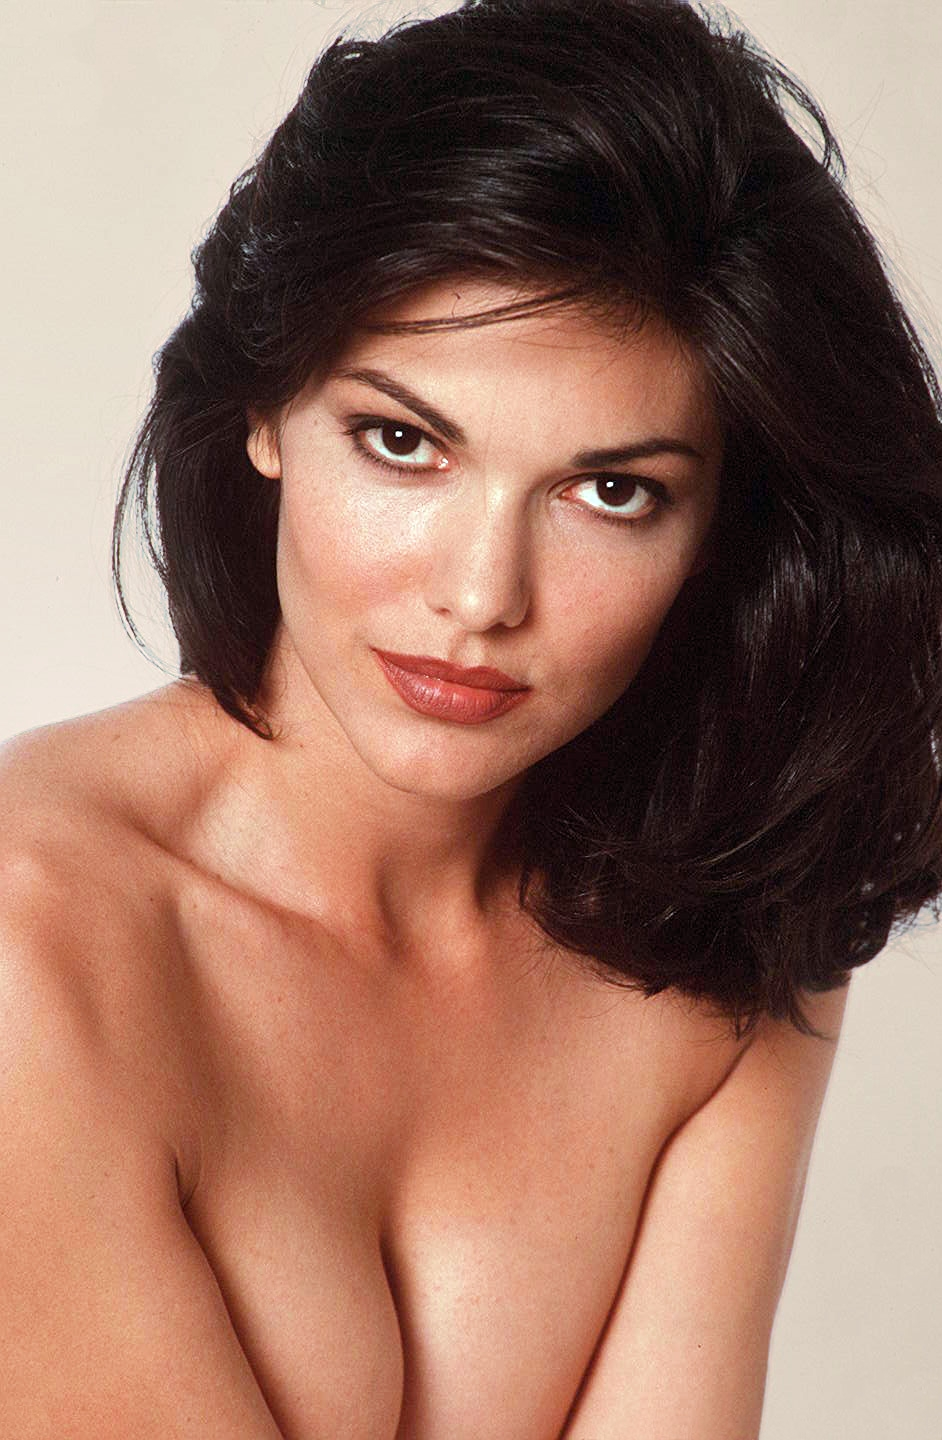 Laura harring naomi watts in mulholland dr